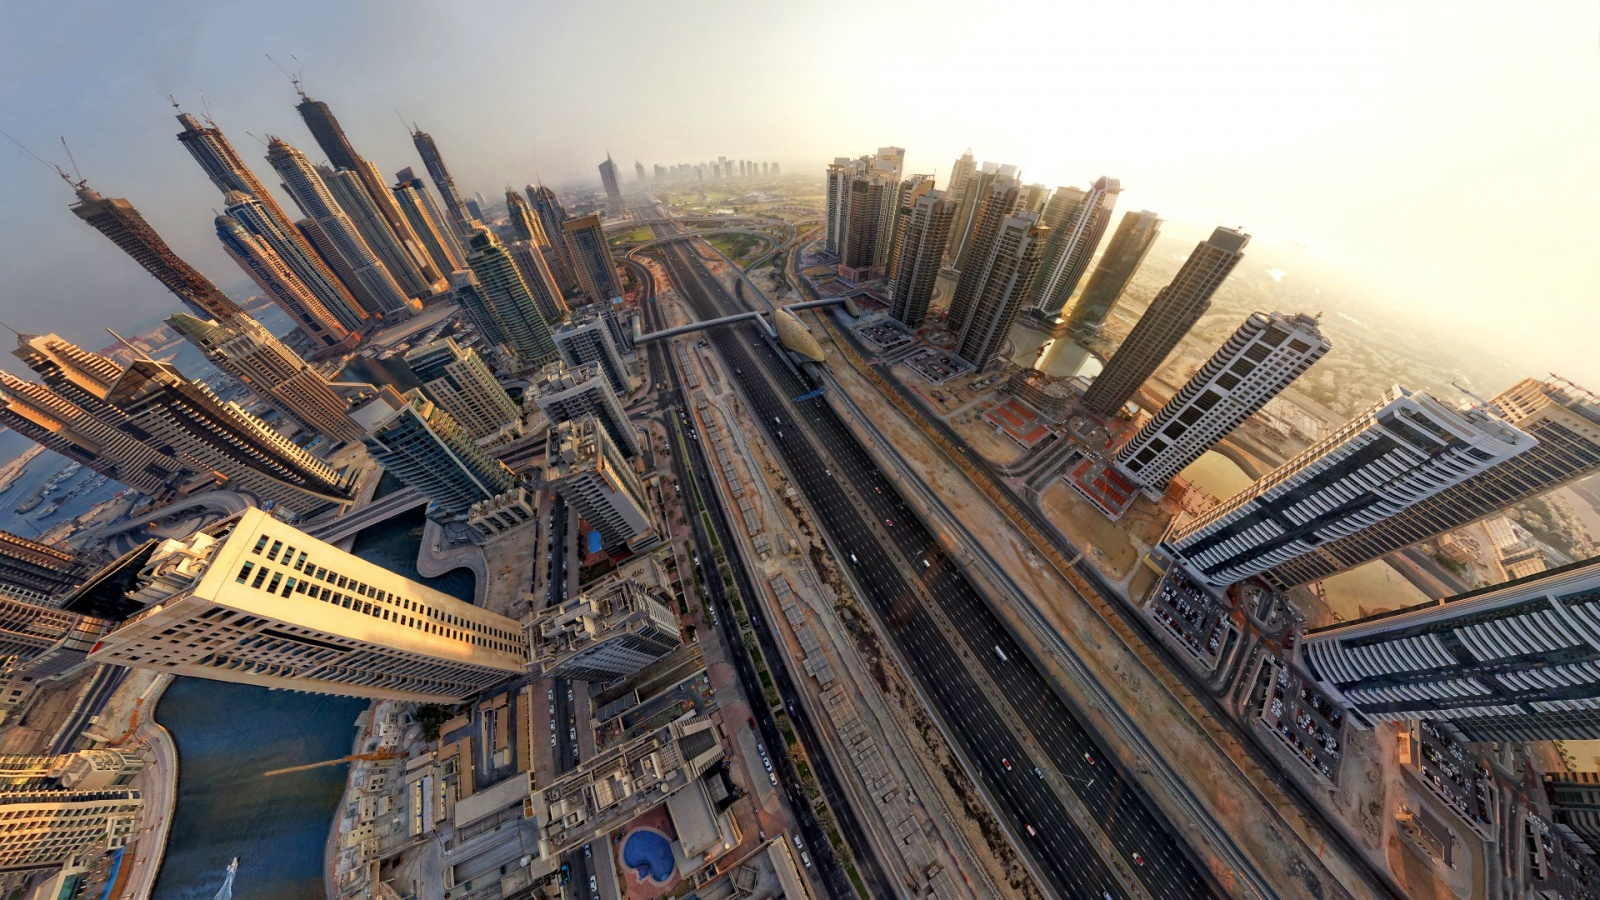 Description: The Wallpaper above is Dubai fisheye view Wallpaper in Resolution 1600x900. Choose your Resolution and Download Dubai fisheye view Wallpaper